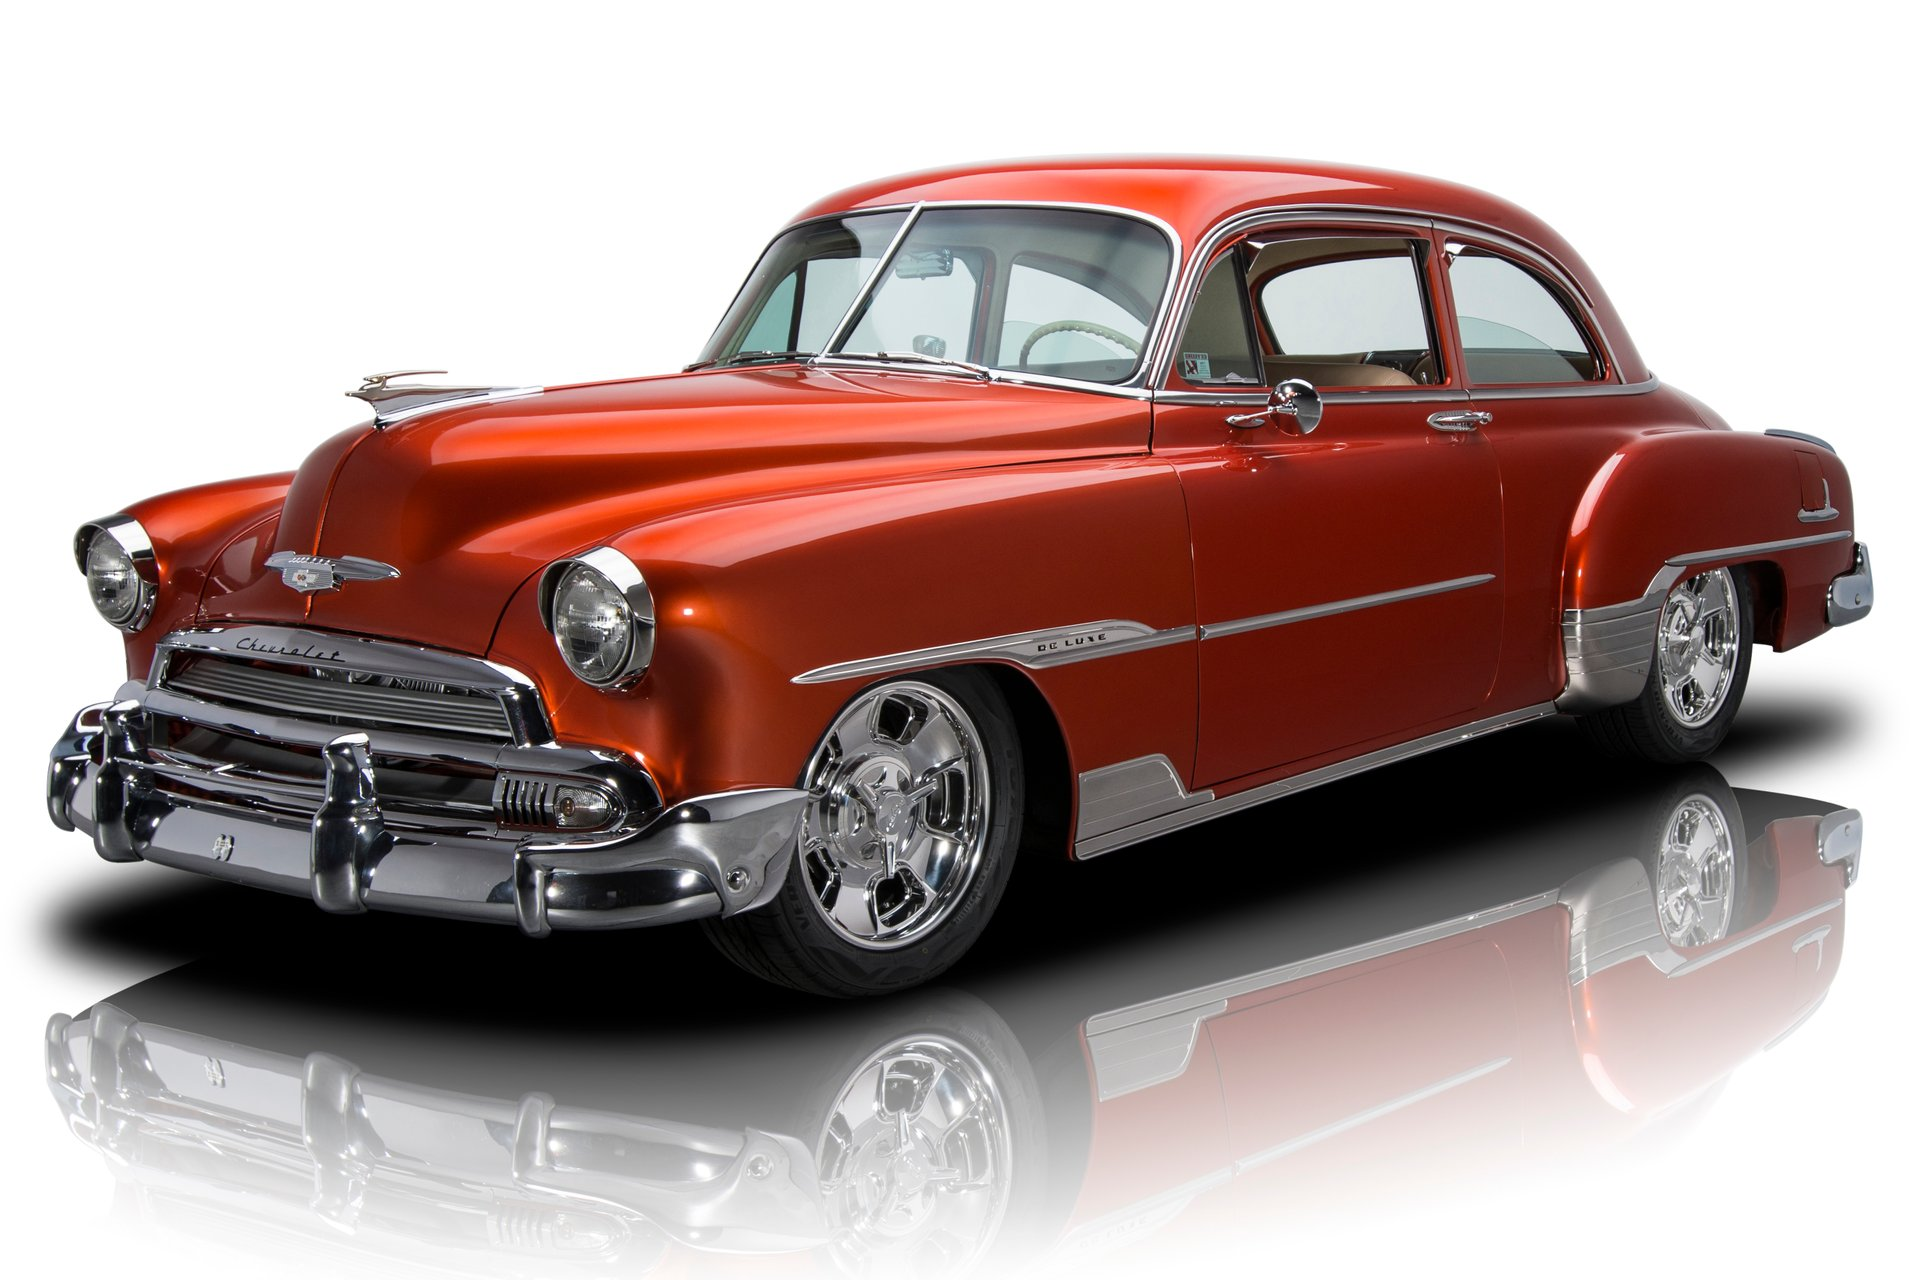 1951 Chevrolet Styleline RK Motors Classic Cars for Sale